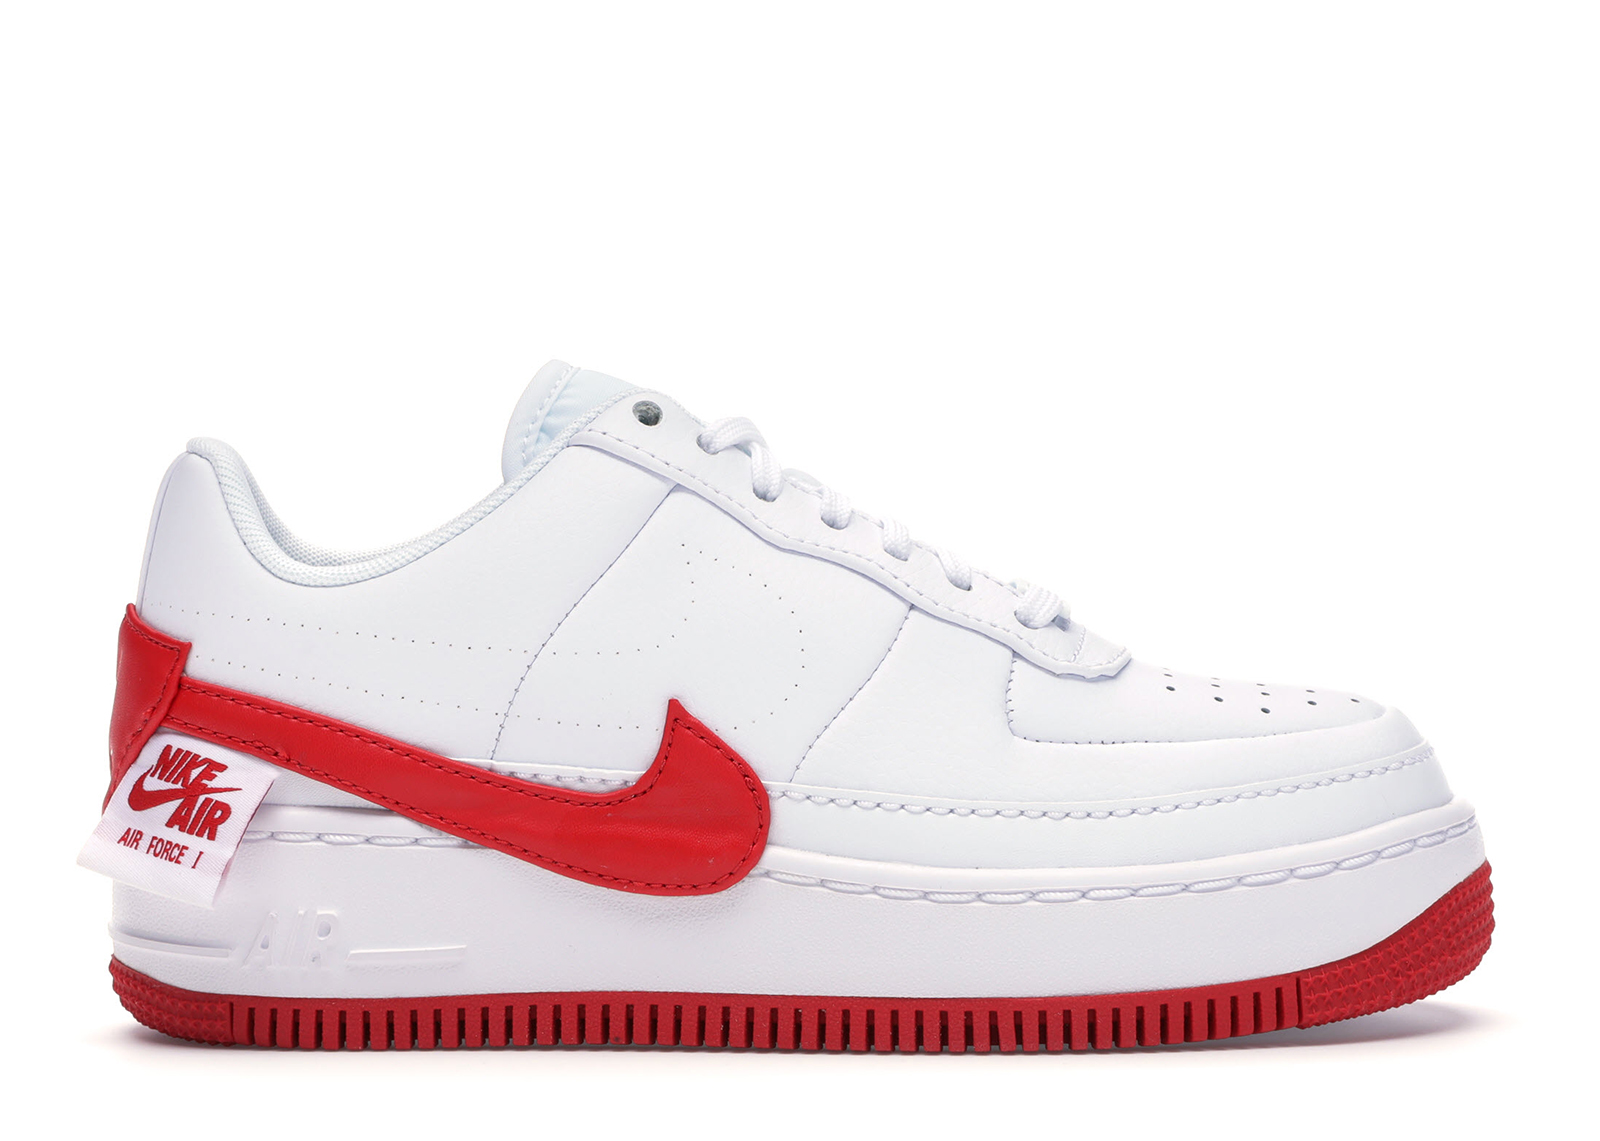 Nike Air Force 1 Jester XX White University Red (W) - AO1220-106